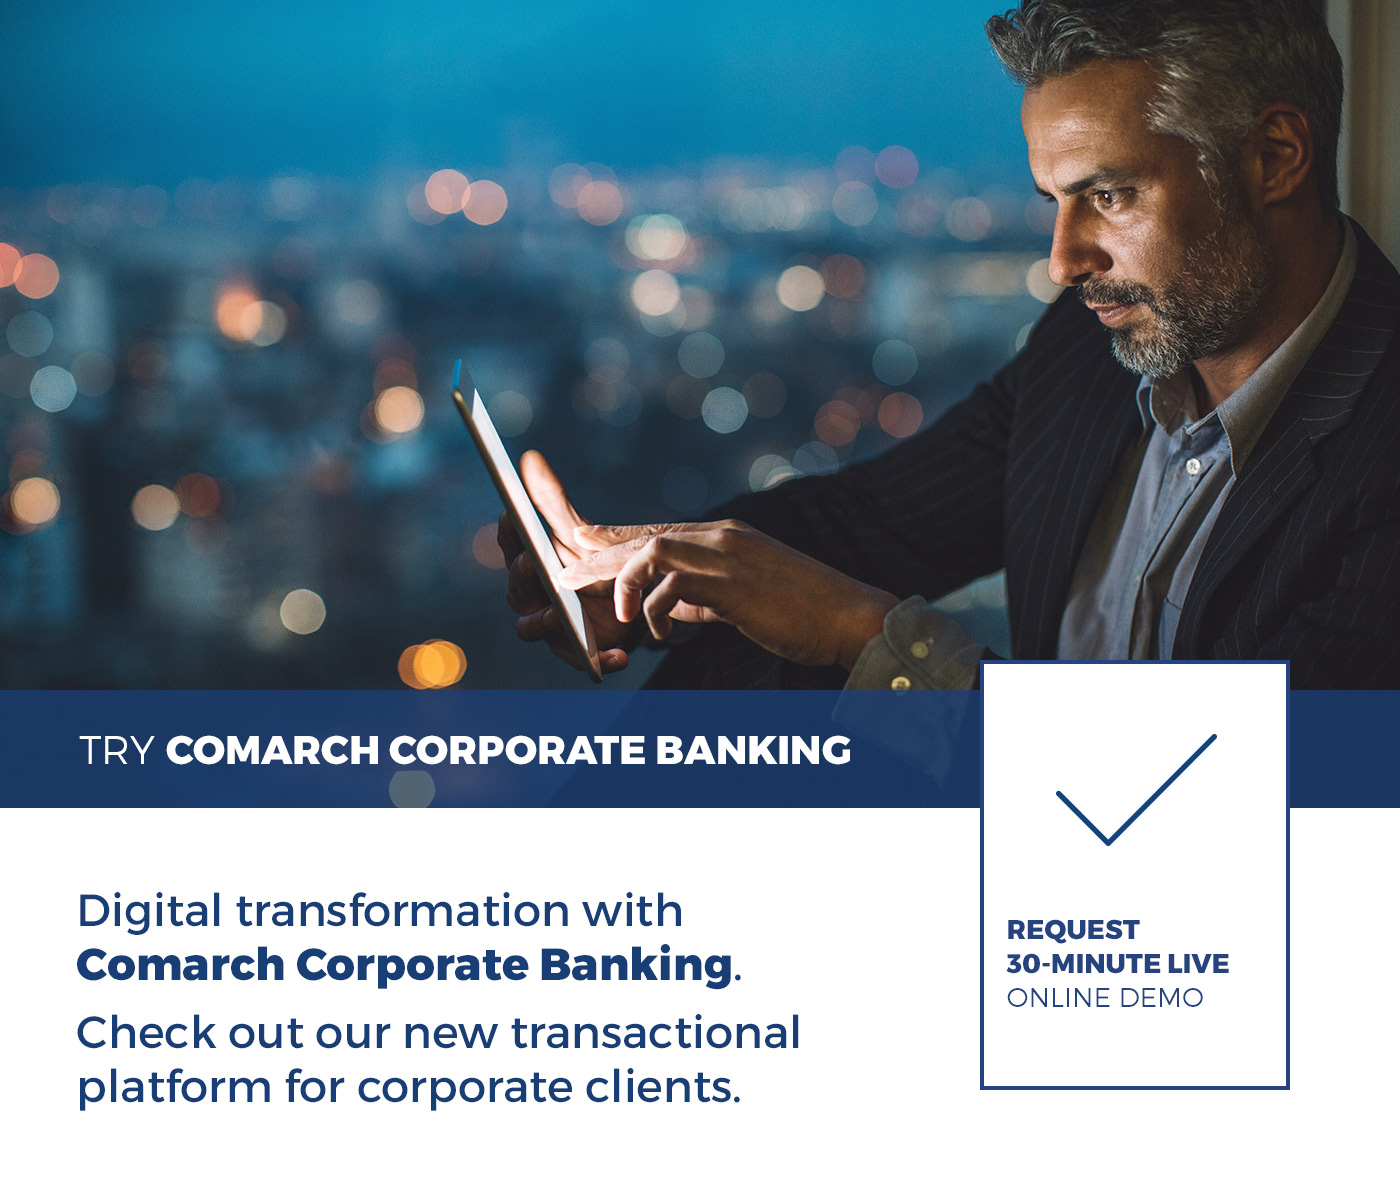 Request Comarch Corporate Banking live demo